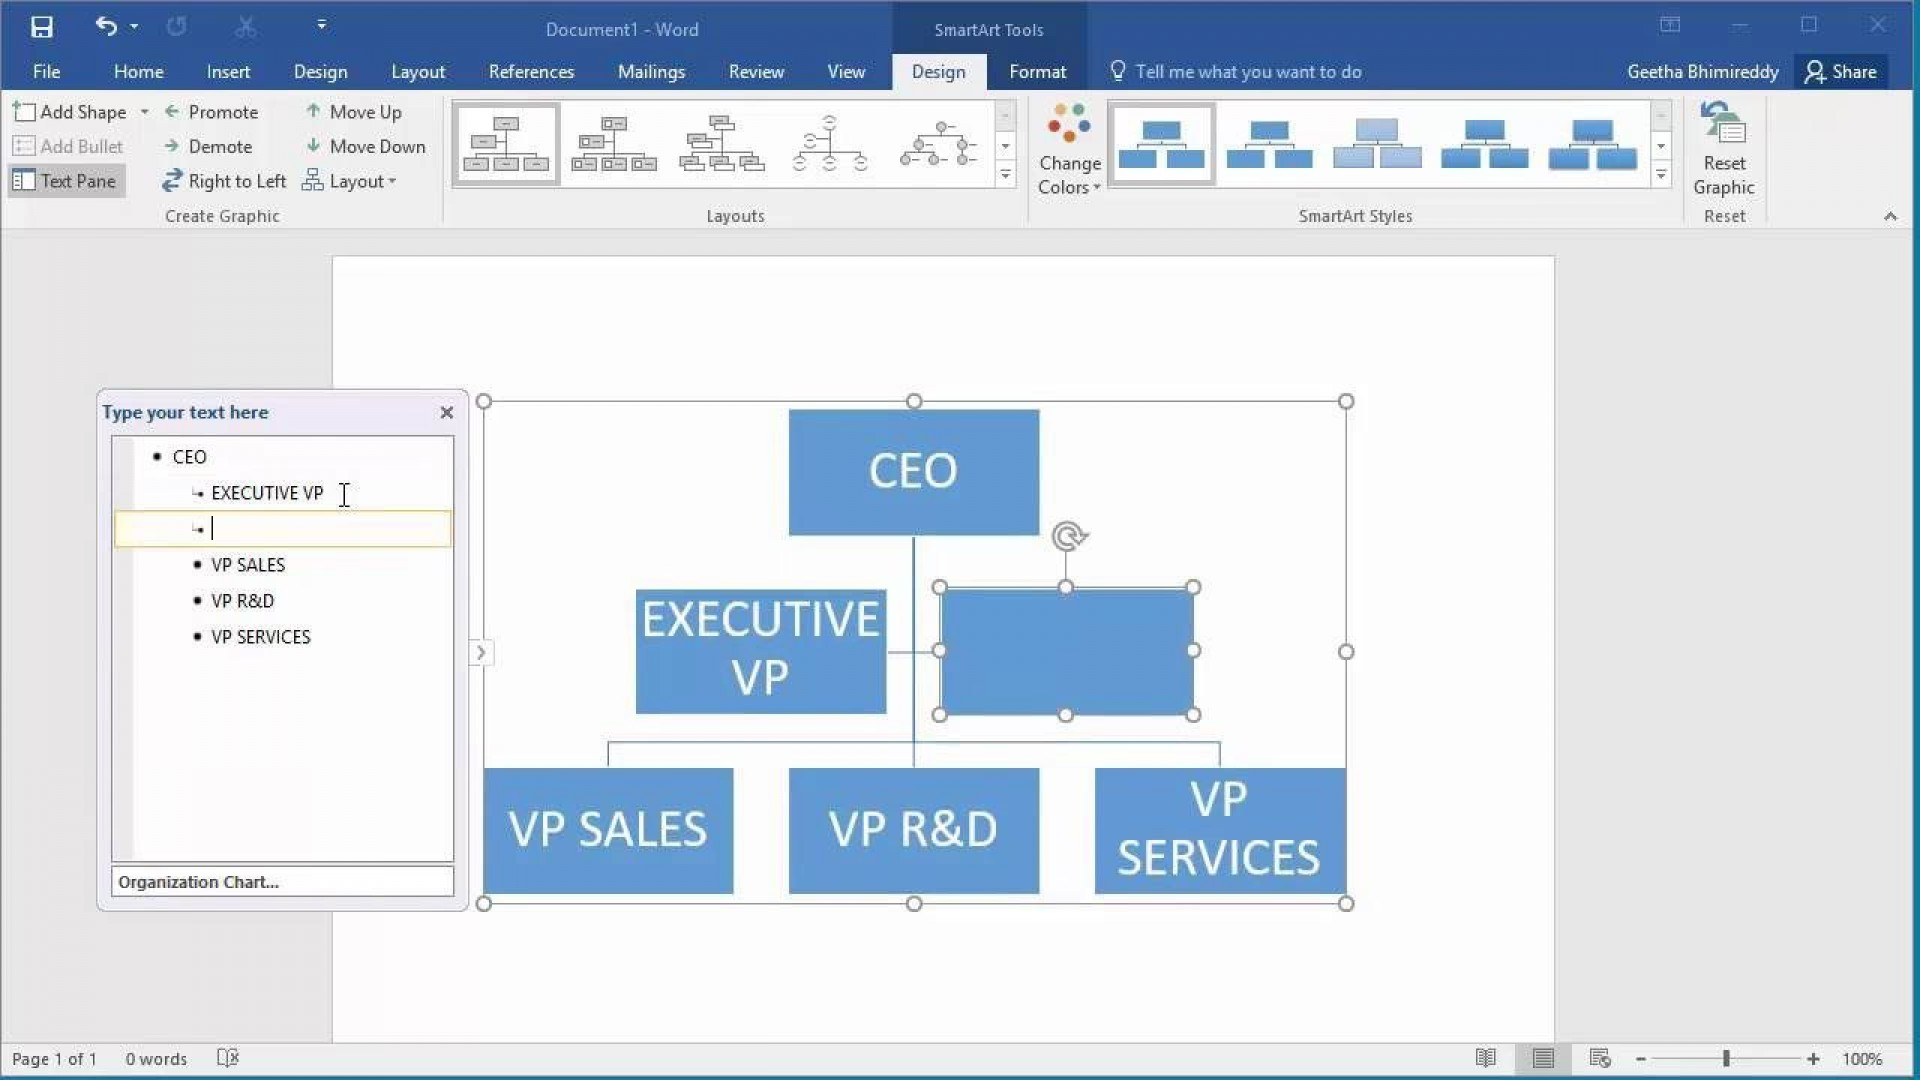 003 Staggering Microsoft Word Org Chart Template Highest Clarity  Download Organization1920